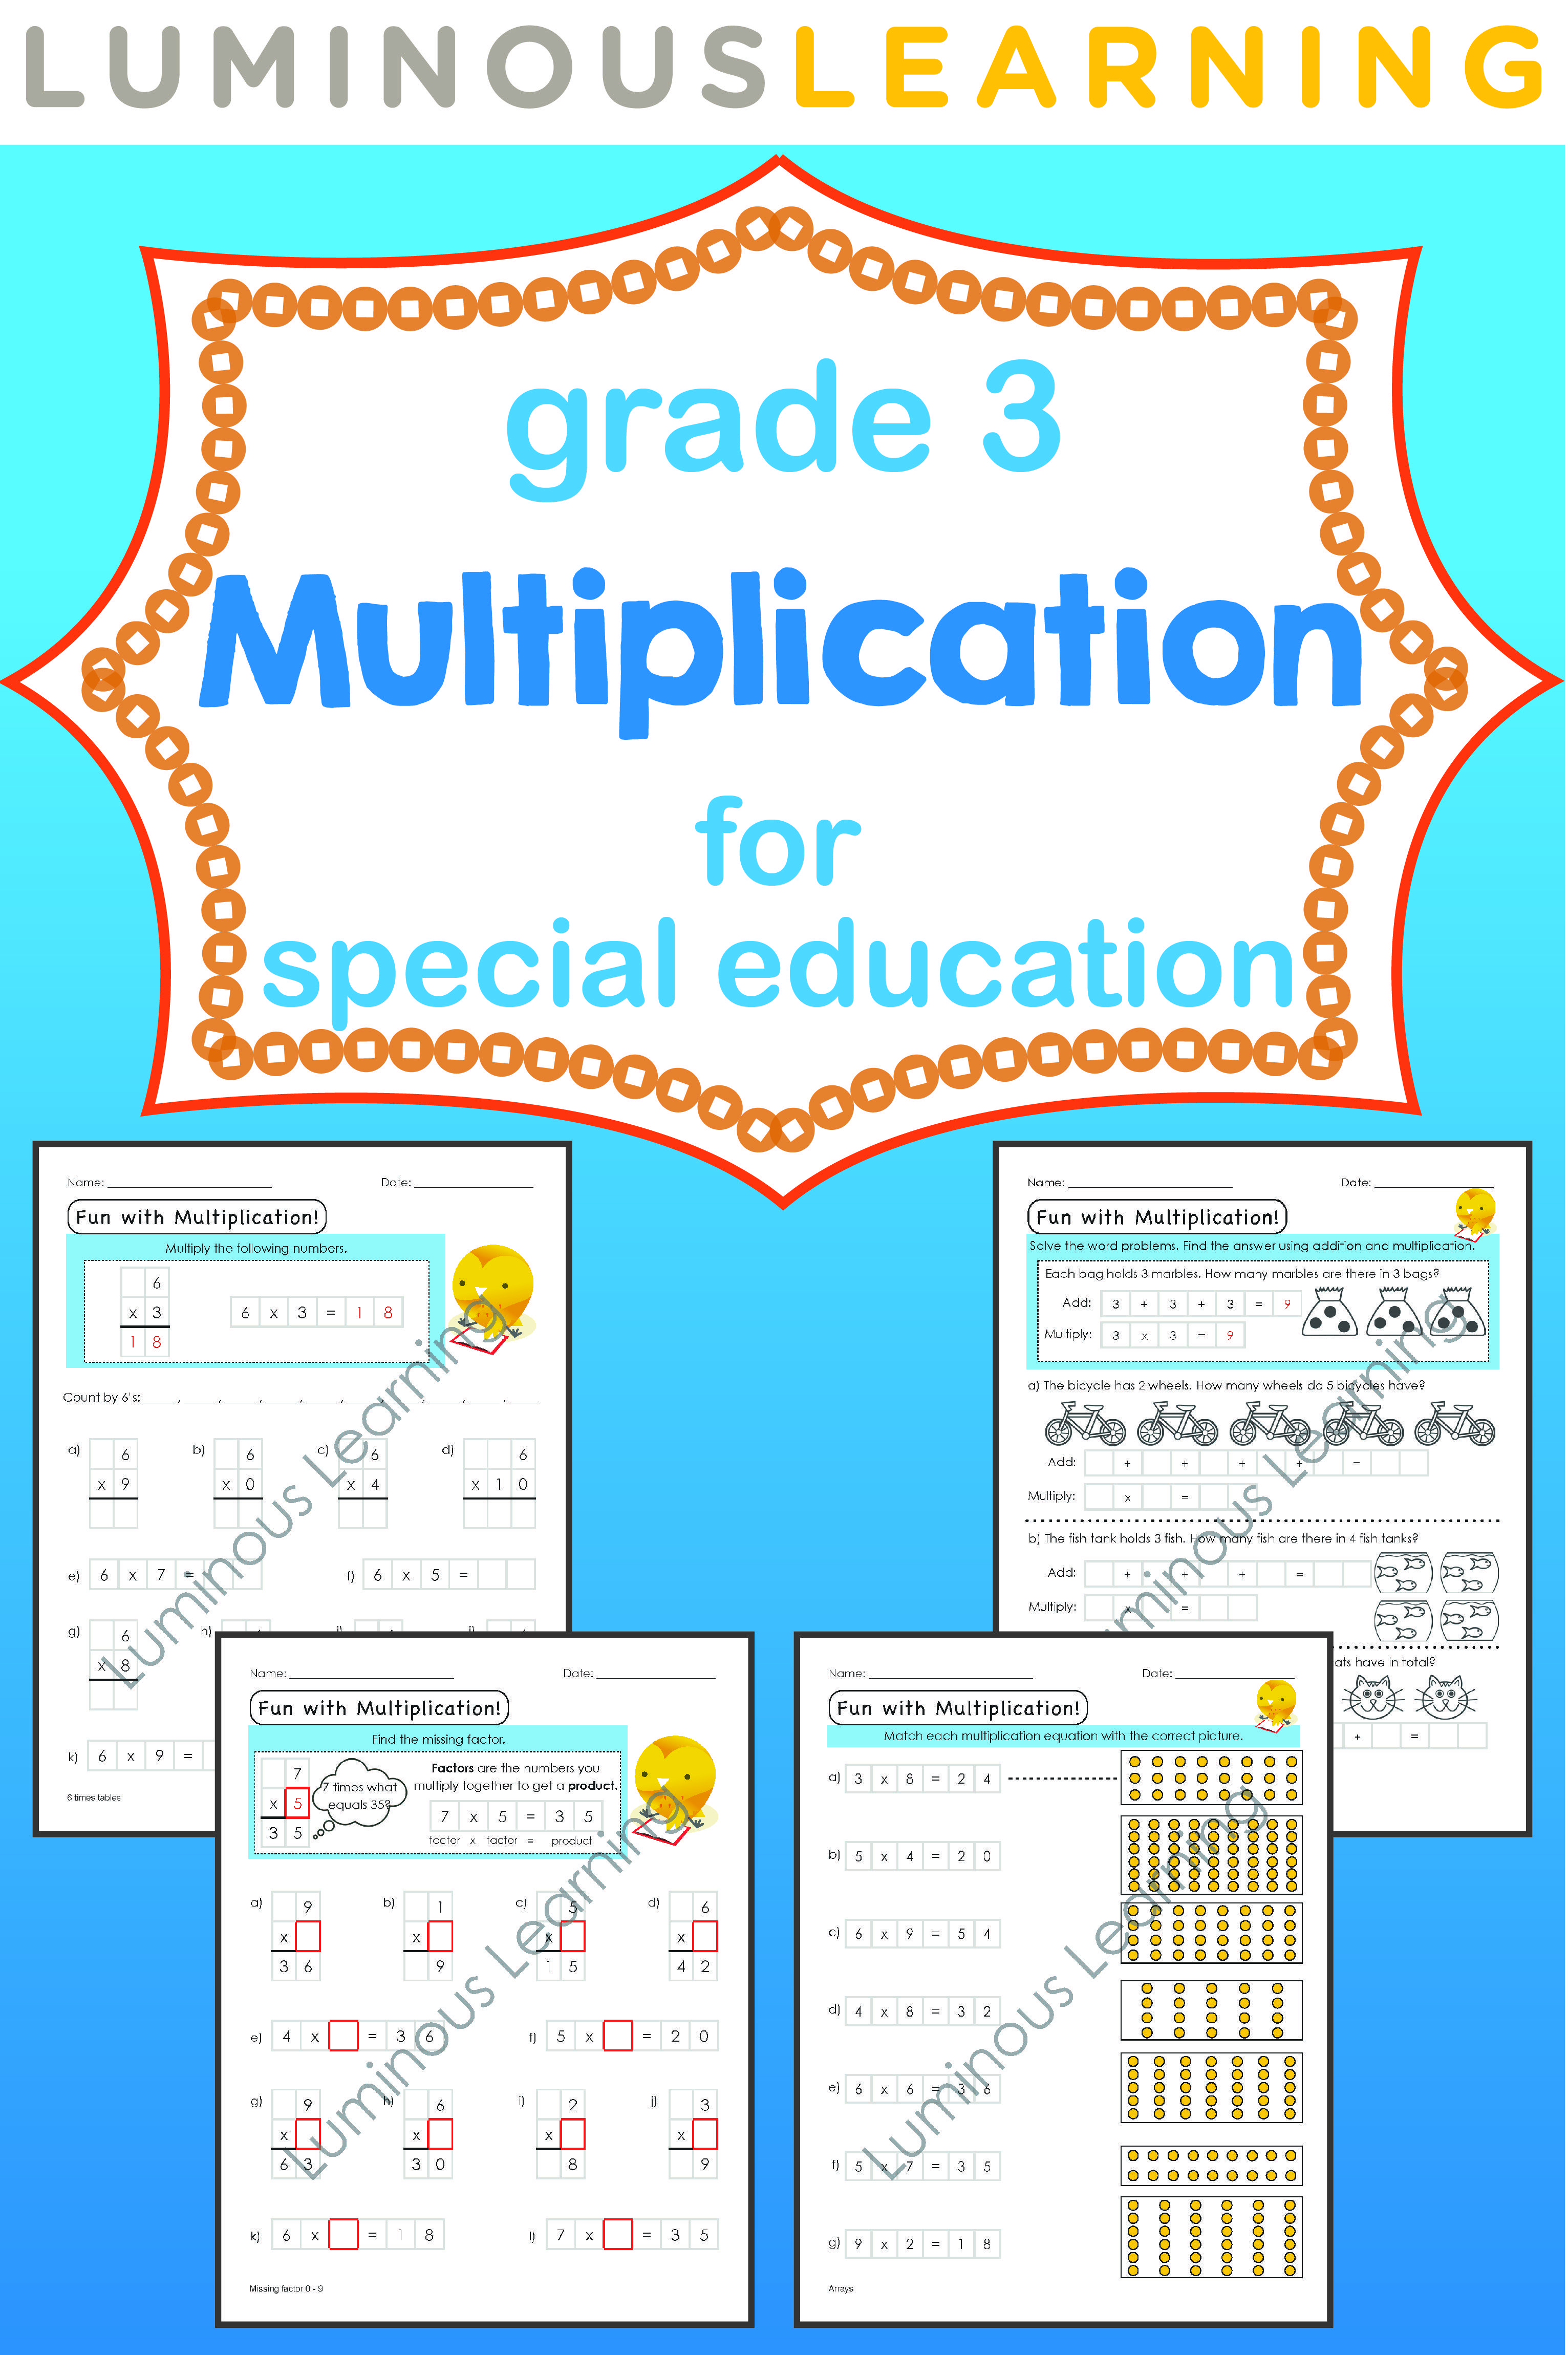 Luminous Learning Grade 3 Multiplication Workbook Empowers